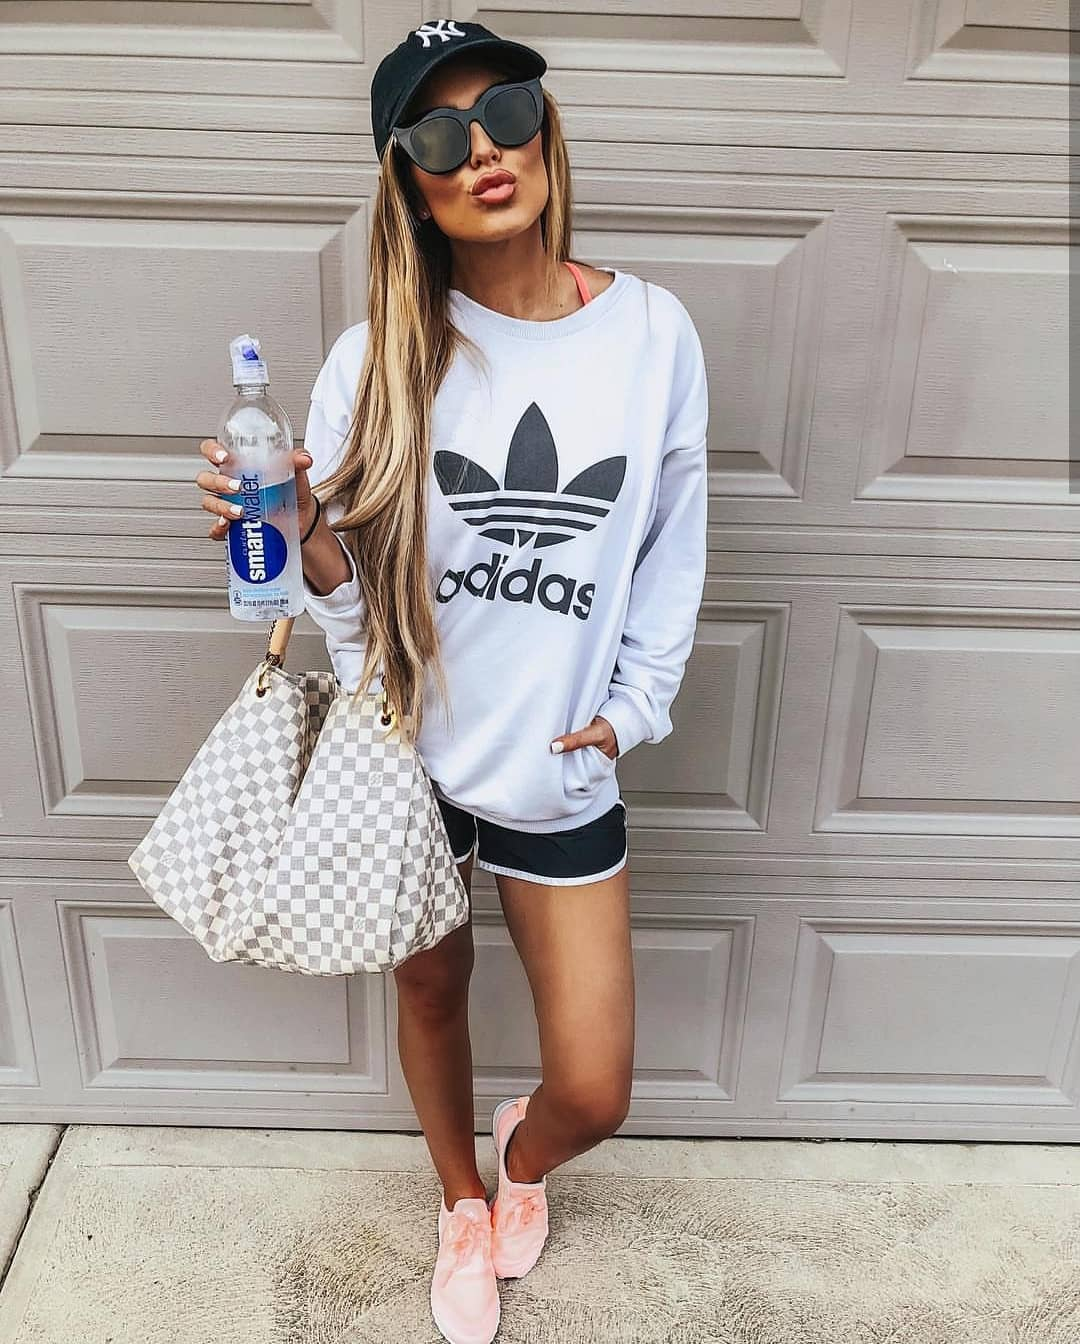 Best Look For Outdoor Sports: Sweatshirt, Shorts And Neon Sneakers 2020